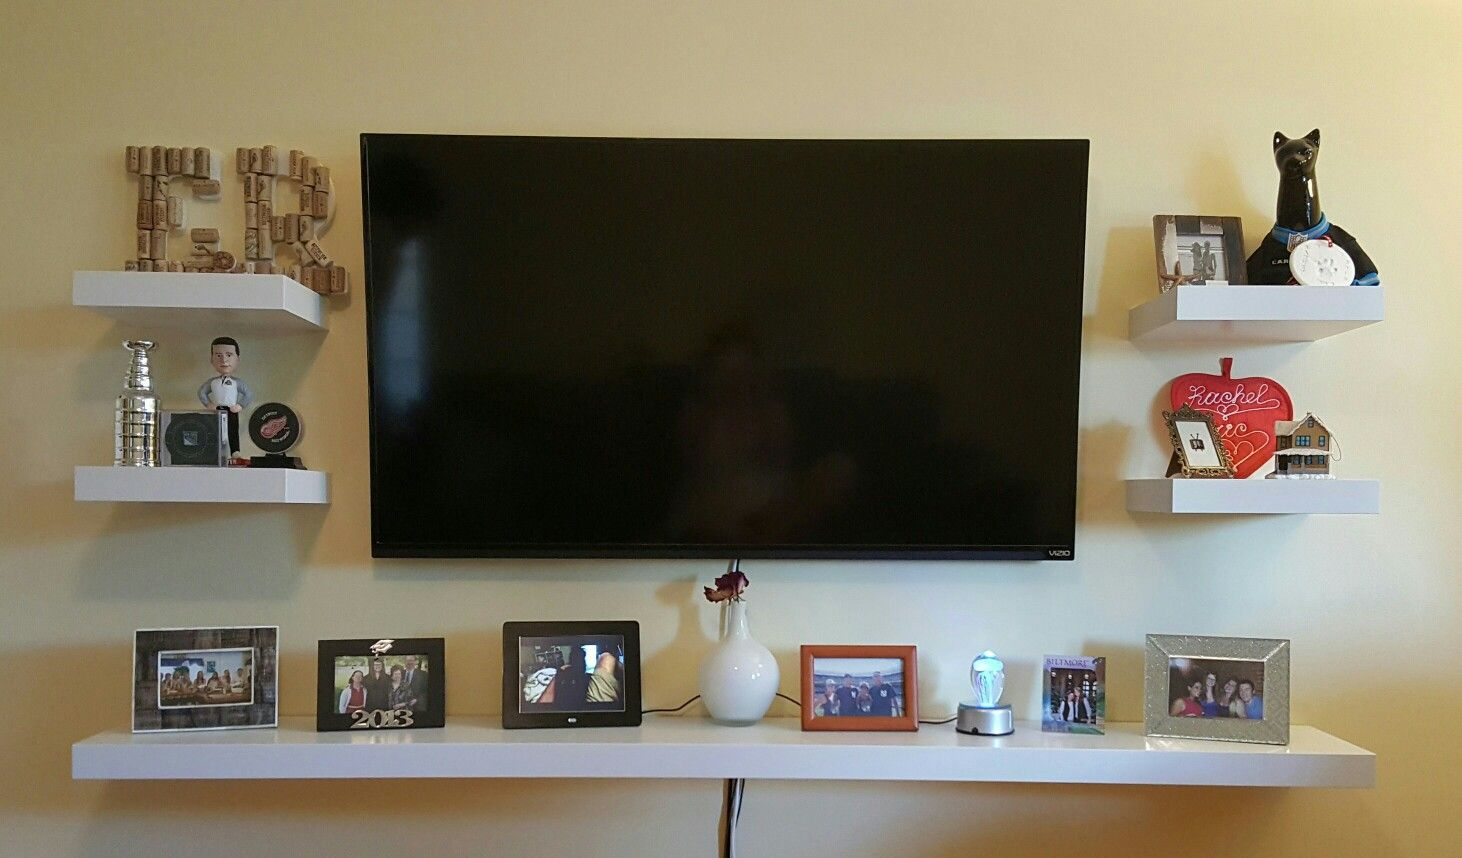 Living Room With Tv Mounted On Wall wall mounted tv decor! floating shelves make the entire wall a